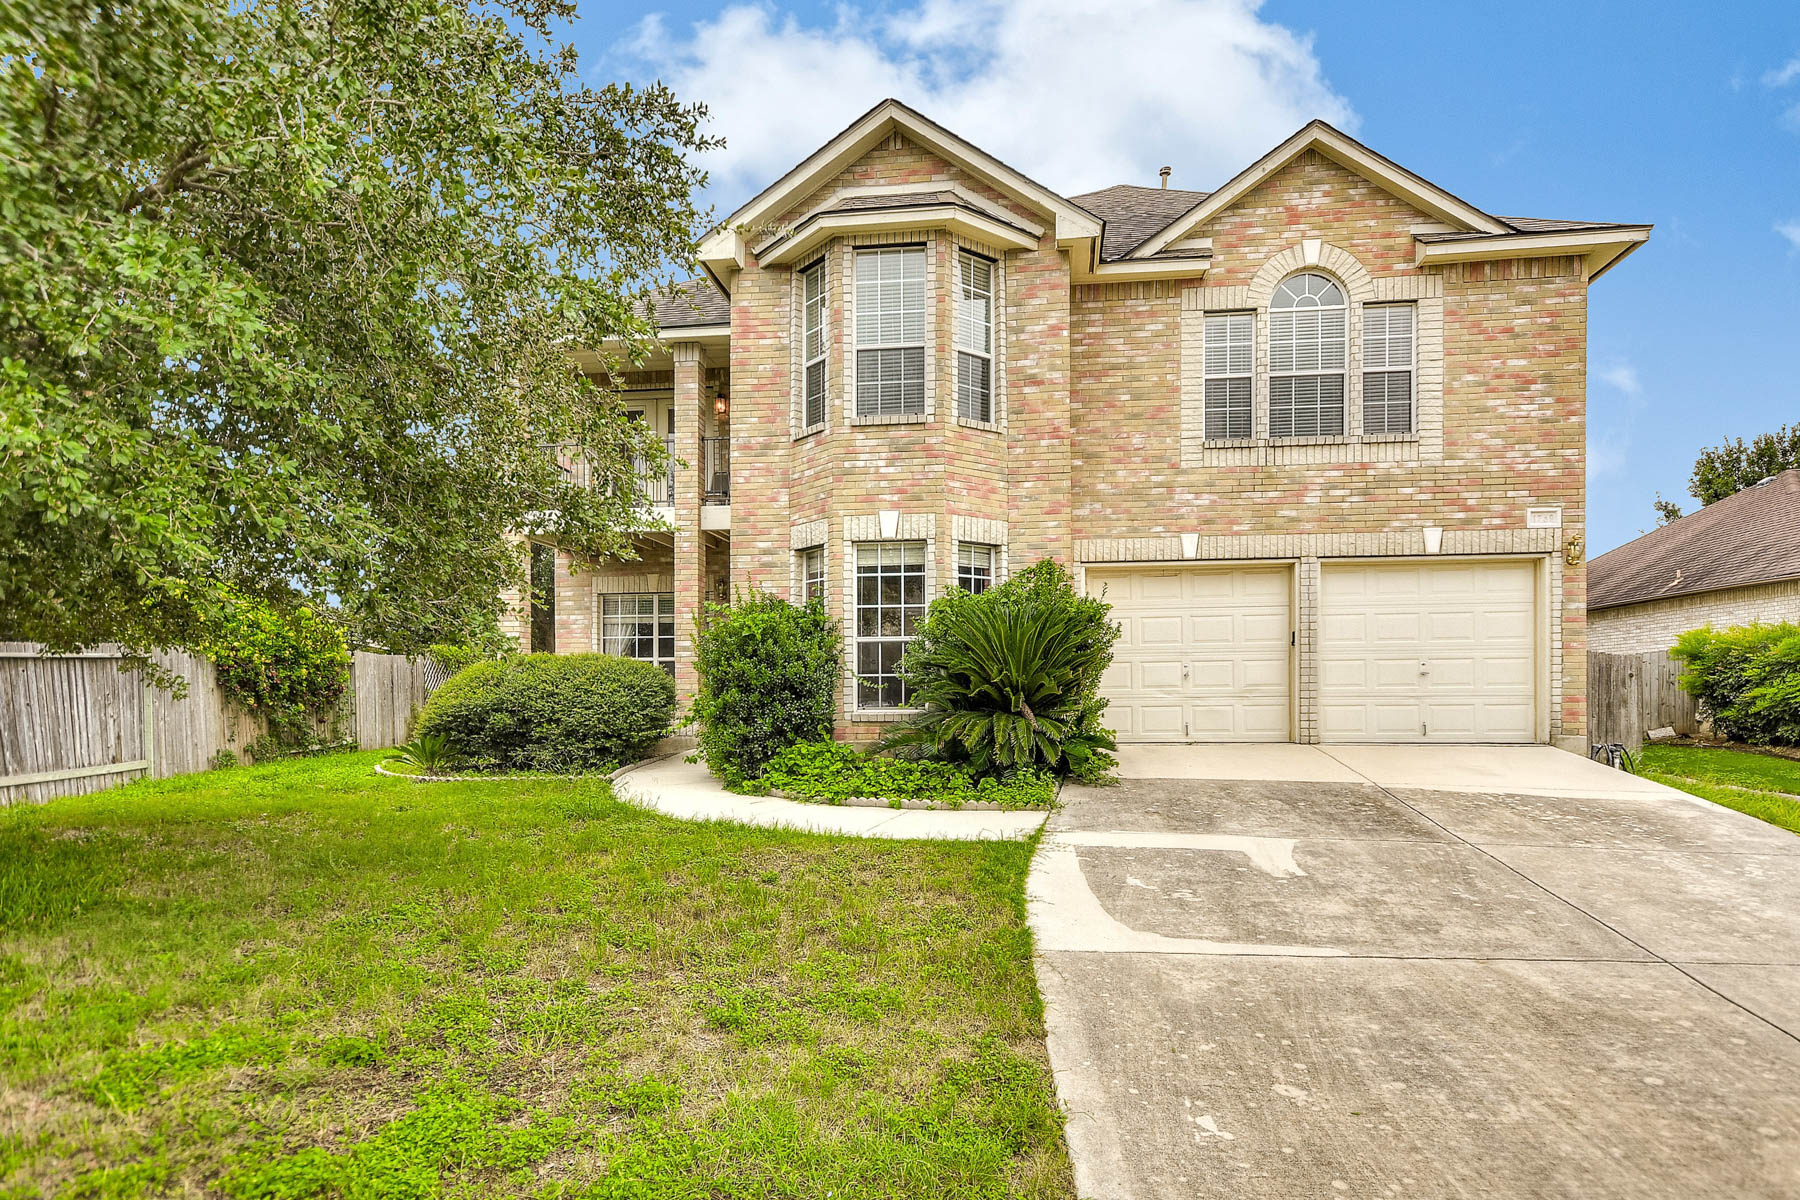 Single Family Home for Sale at Spacious Home in Oak Run 1759 Oak Glen New Braunfels, Texas 78132 United States